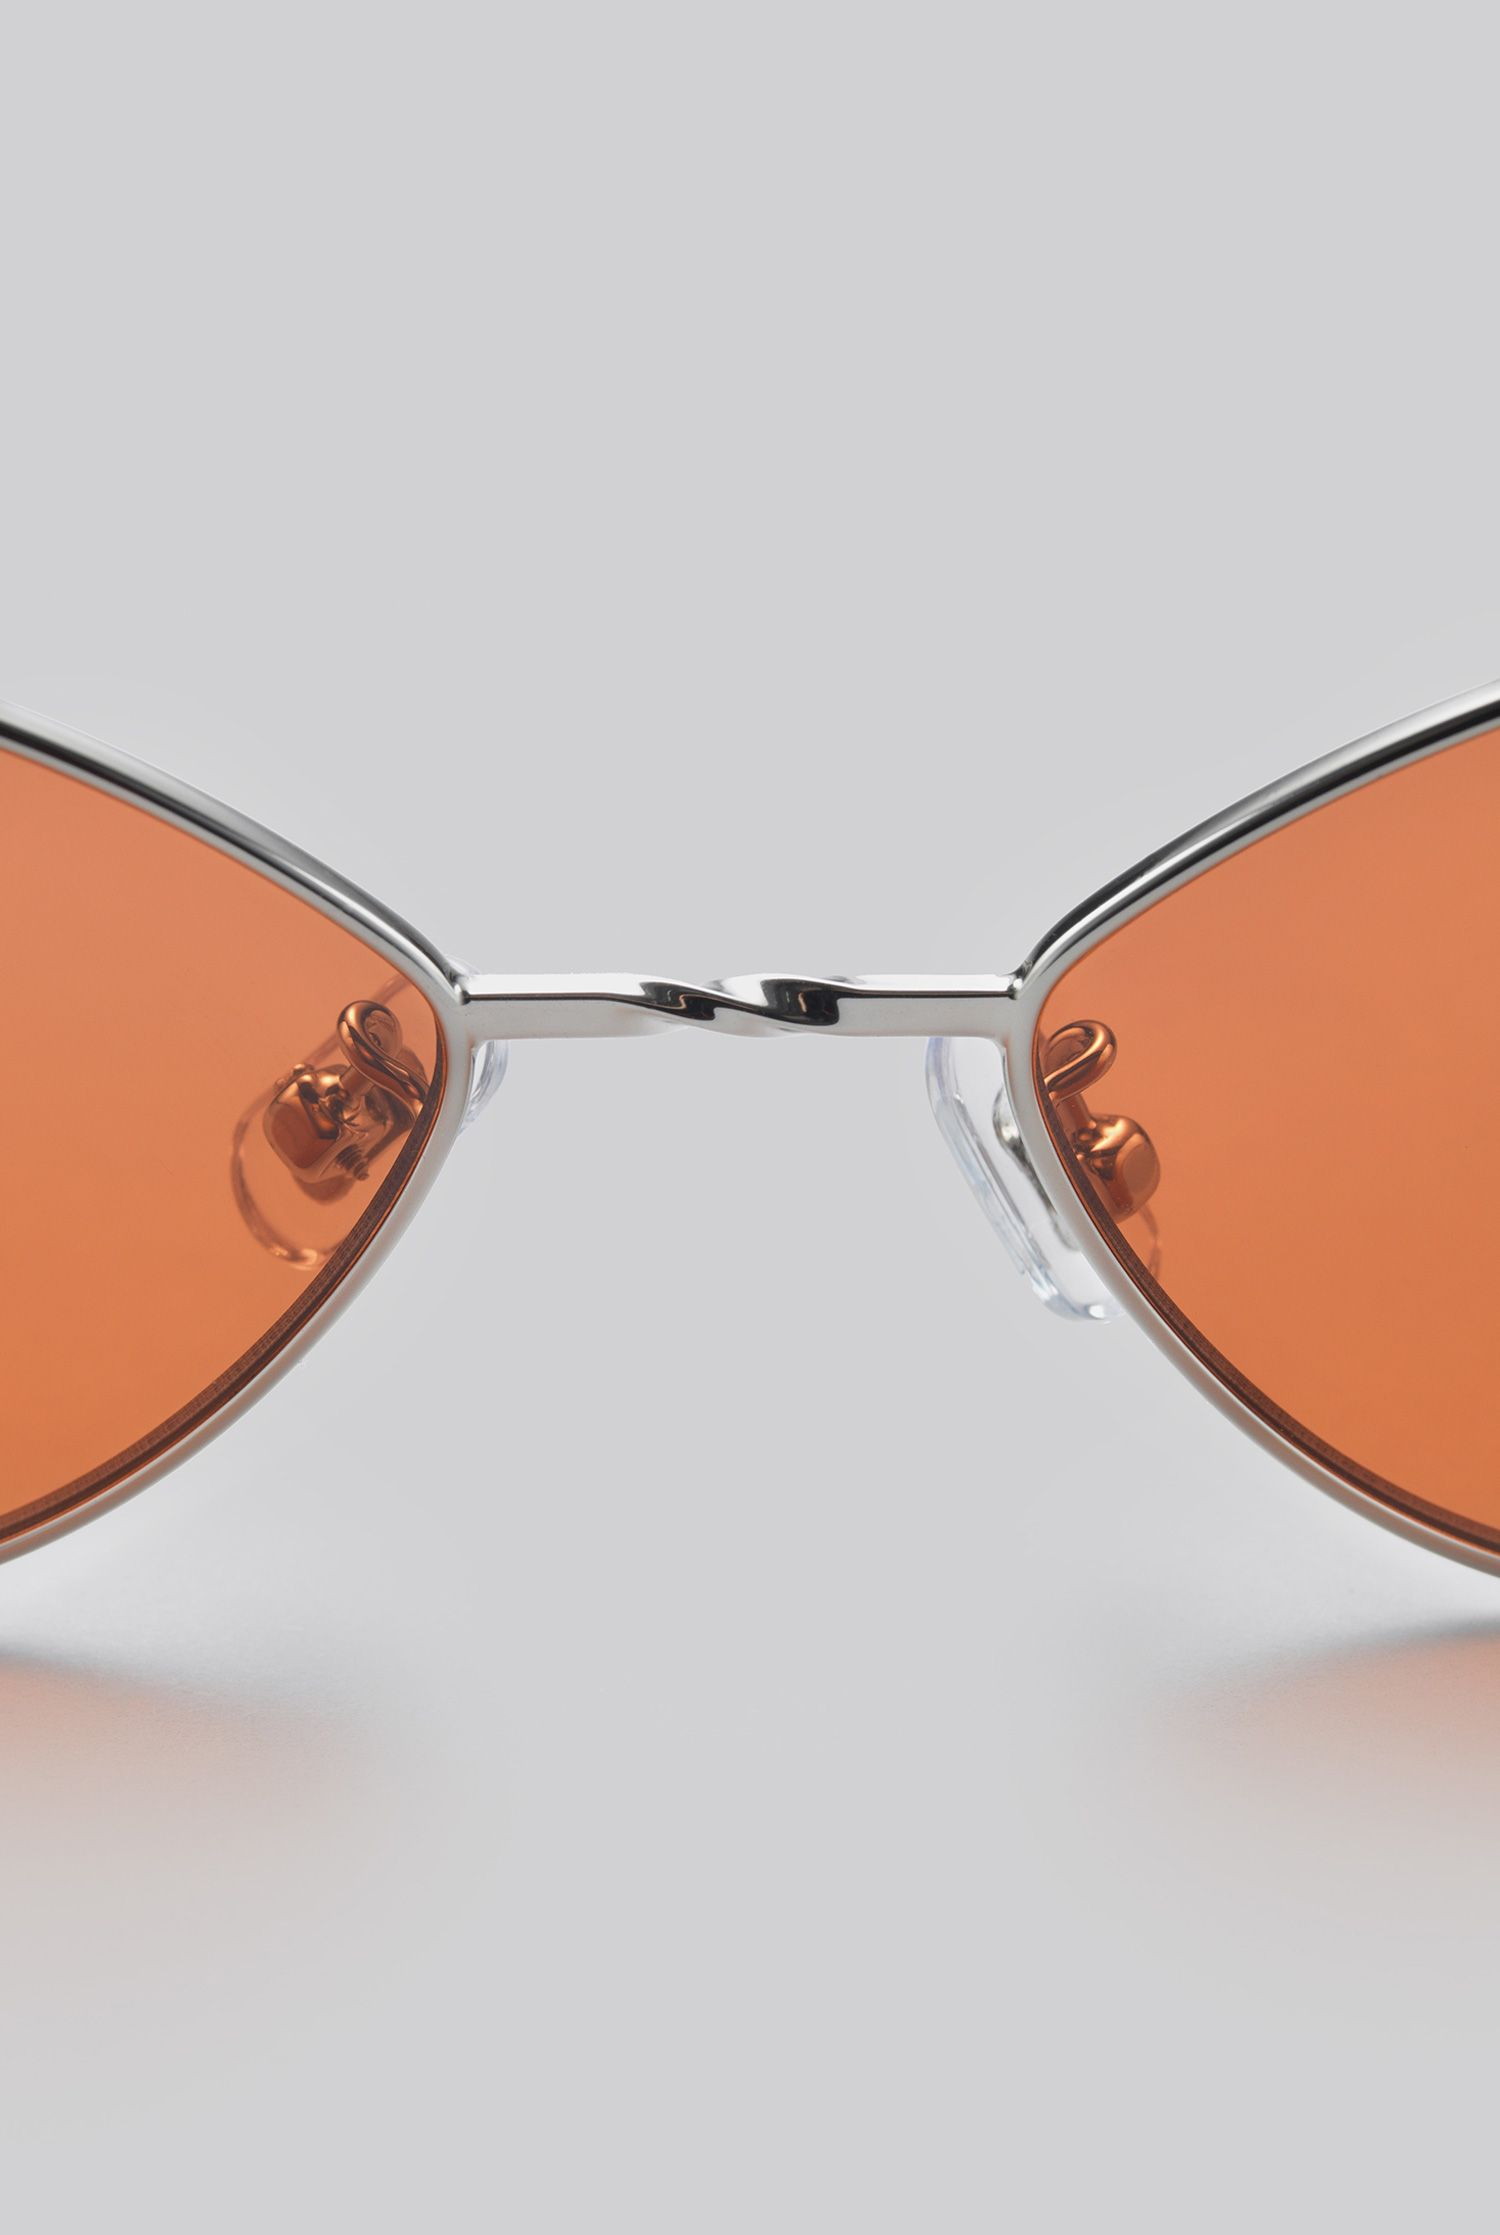 3761f6cdf4c9c GENTLE MONSTER 2018 Sunglasses COBALT 02(OR) Stainless steel and monel  frame in silver